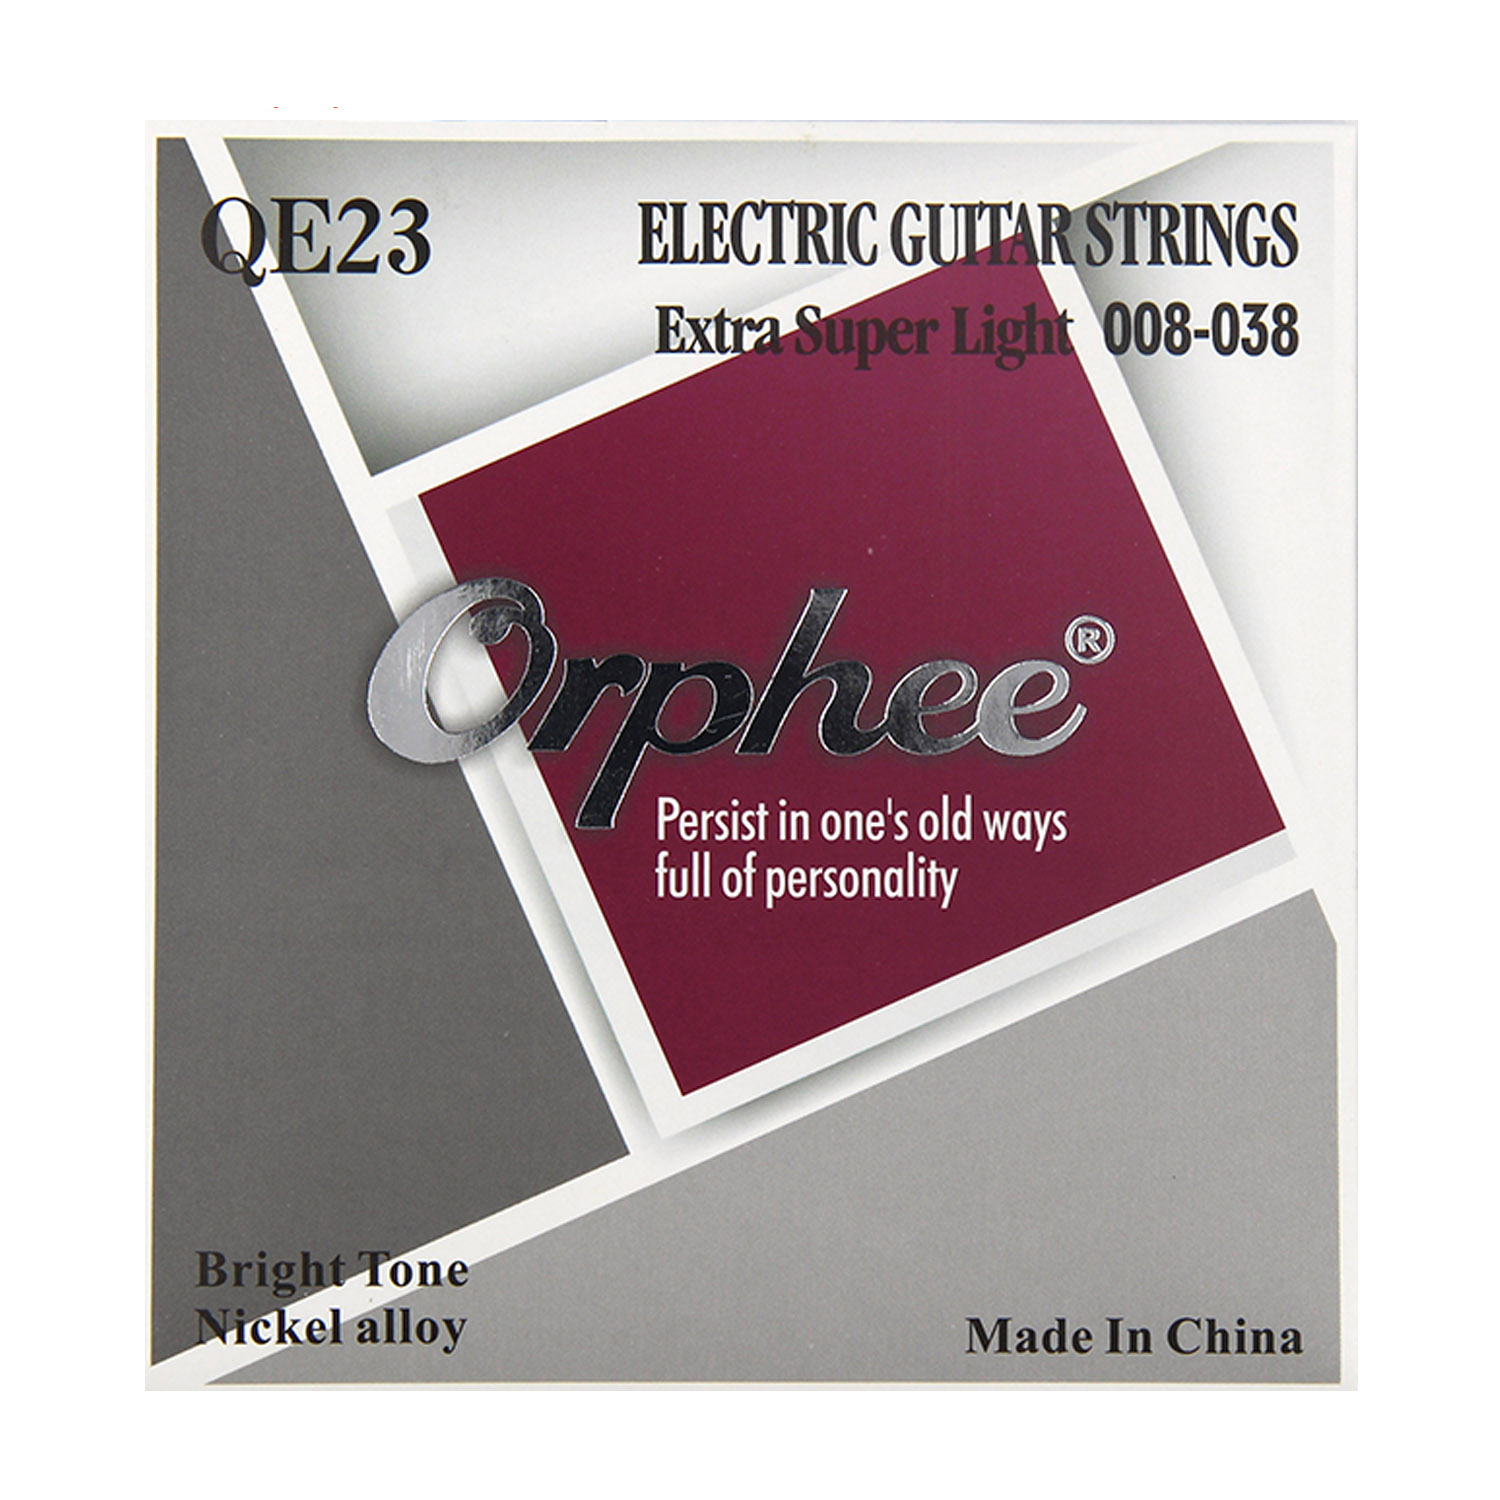 Electric Guitar Strings 008-038 Hexagonal Nickel alloy Orphee QE23 009 042 electric guitar strings color nickel alloy hat cew730